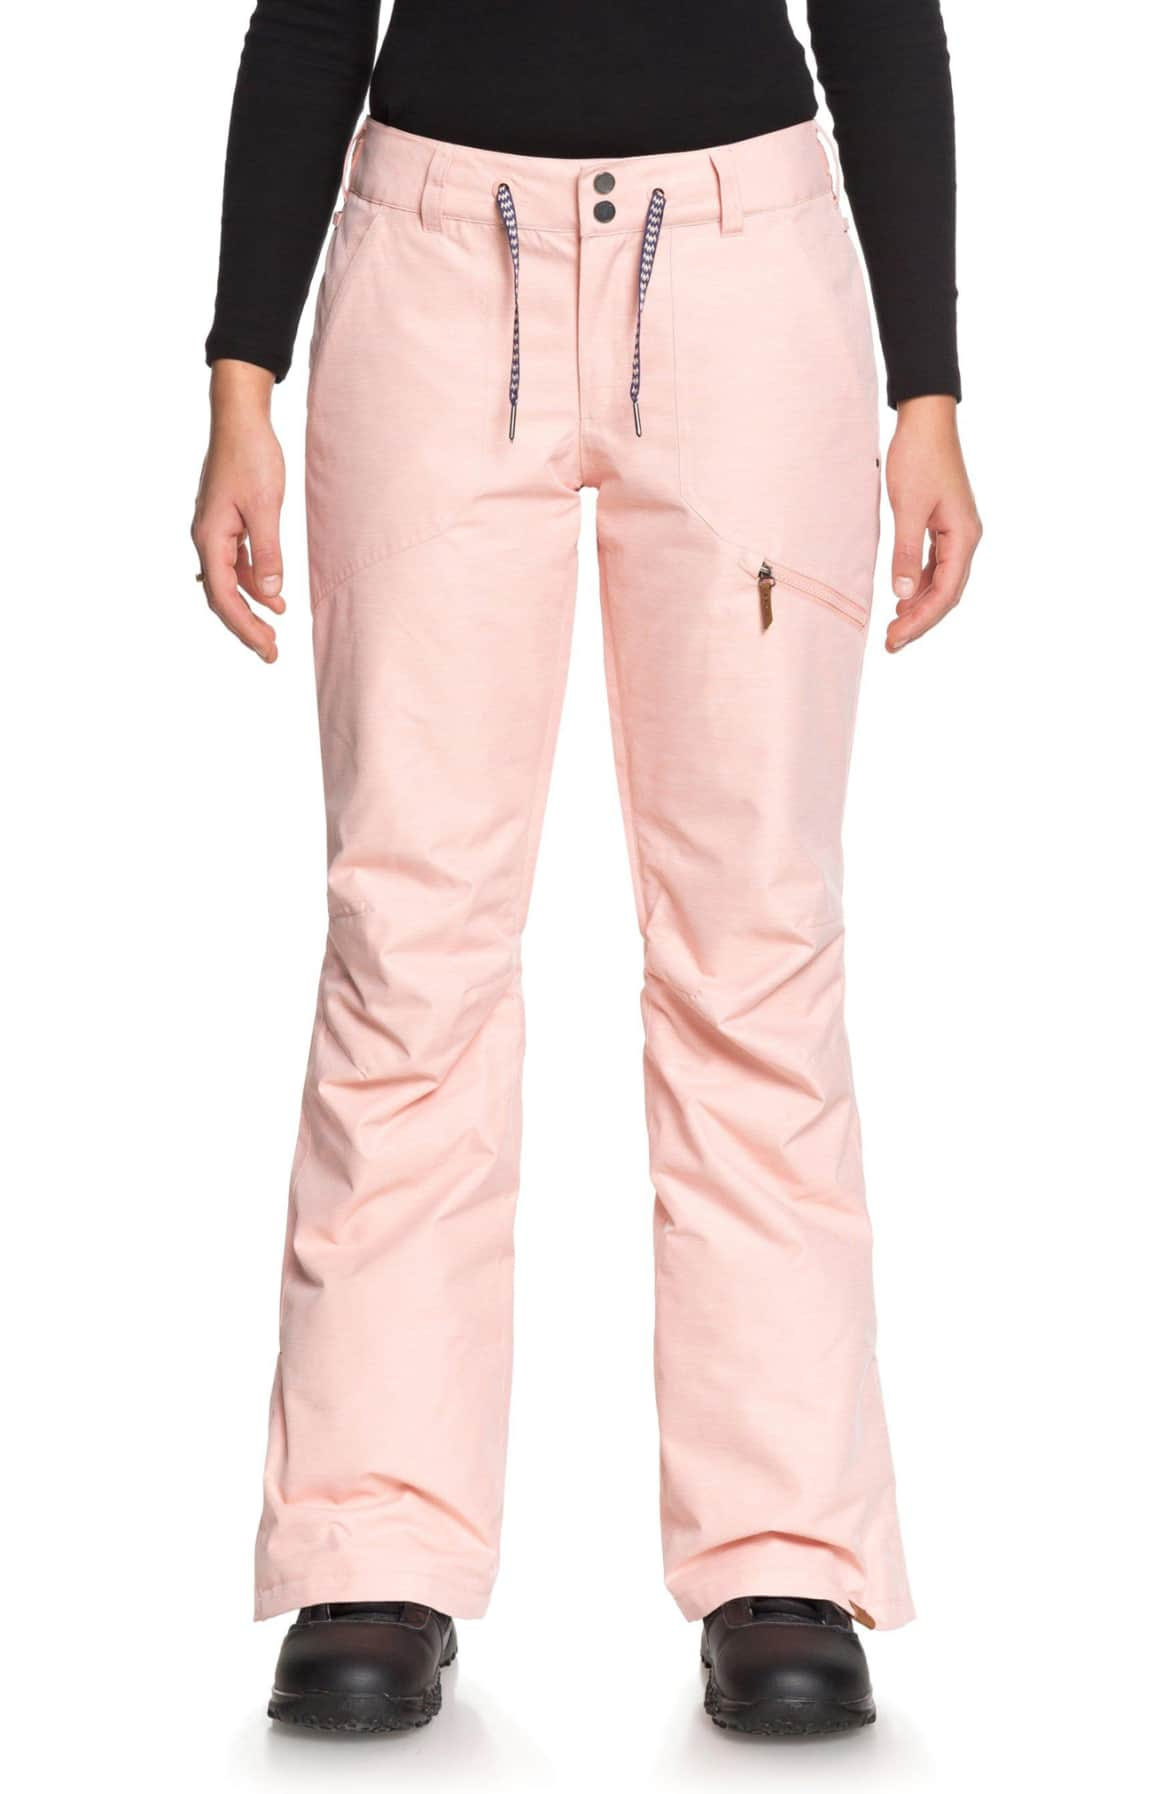 Stash everything you need in the multiple pockets of these lightweight pant, perfect for layering.{ } $149.95 (Image: Nordstrom){ }